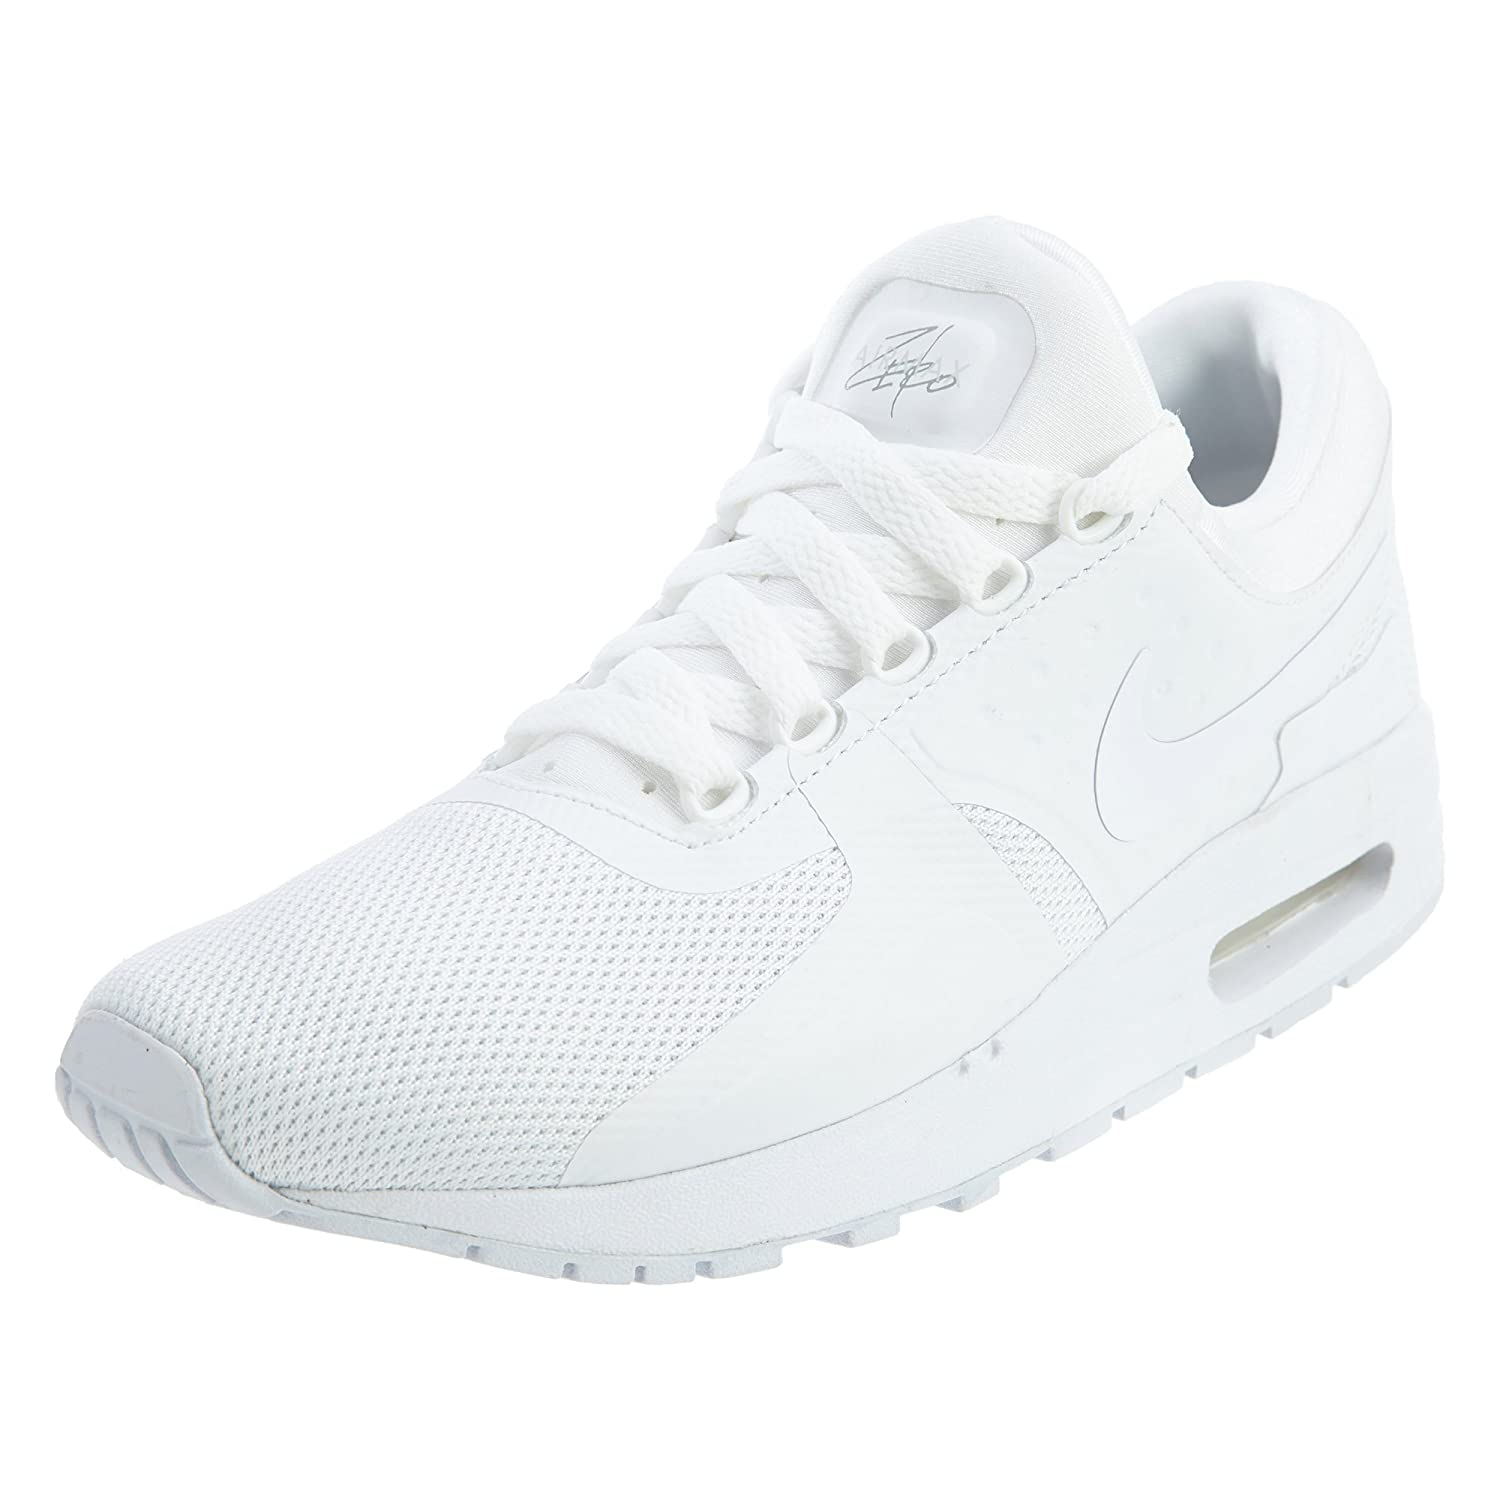 Nike  Air Max Zero Essential GS Running Shoe B0713RCYK2 5.5 M US Big Kid|White Wolf Grey 100